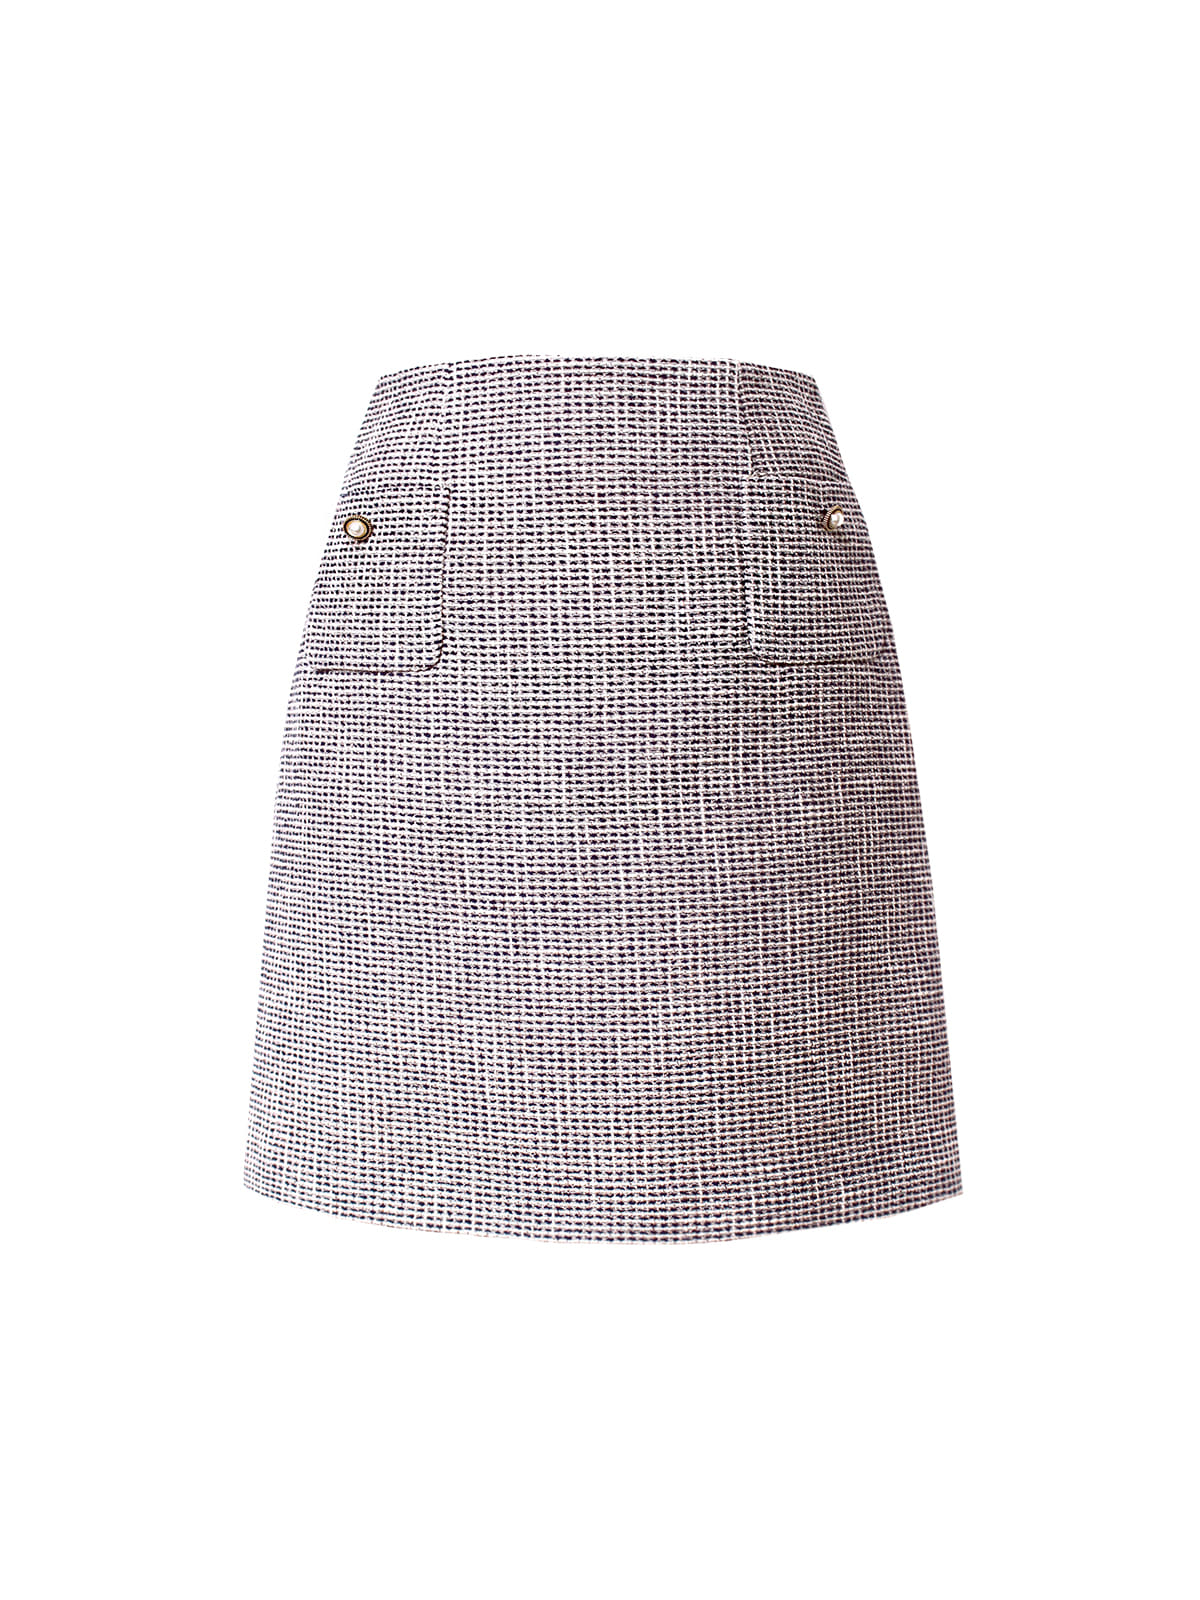 lizy tweed skirt